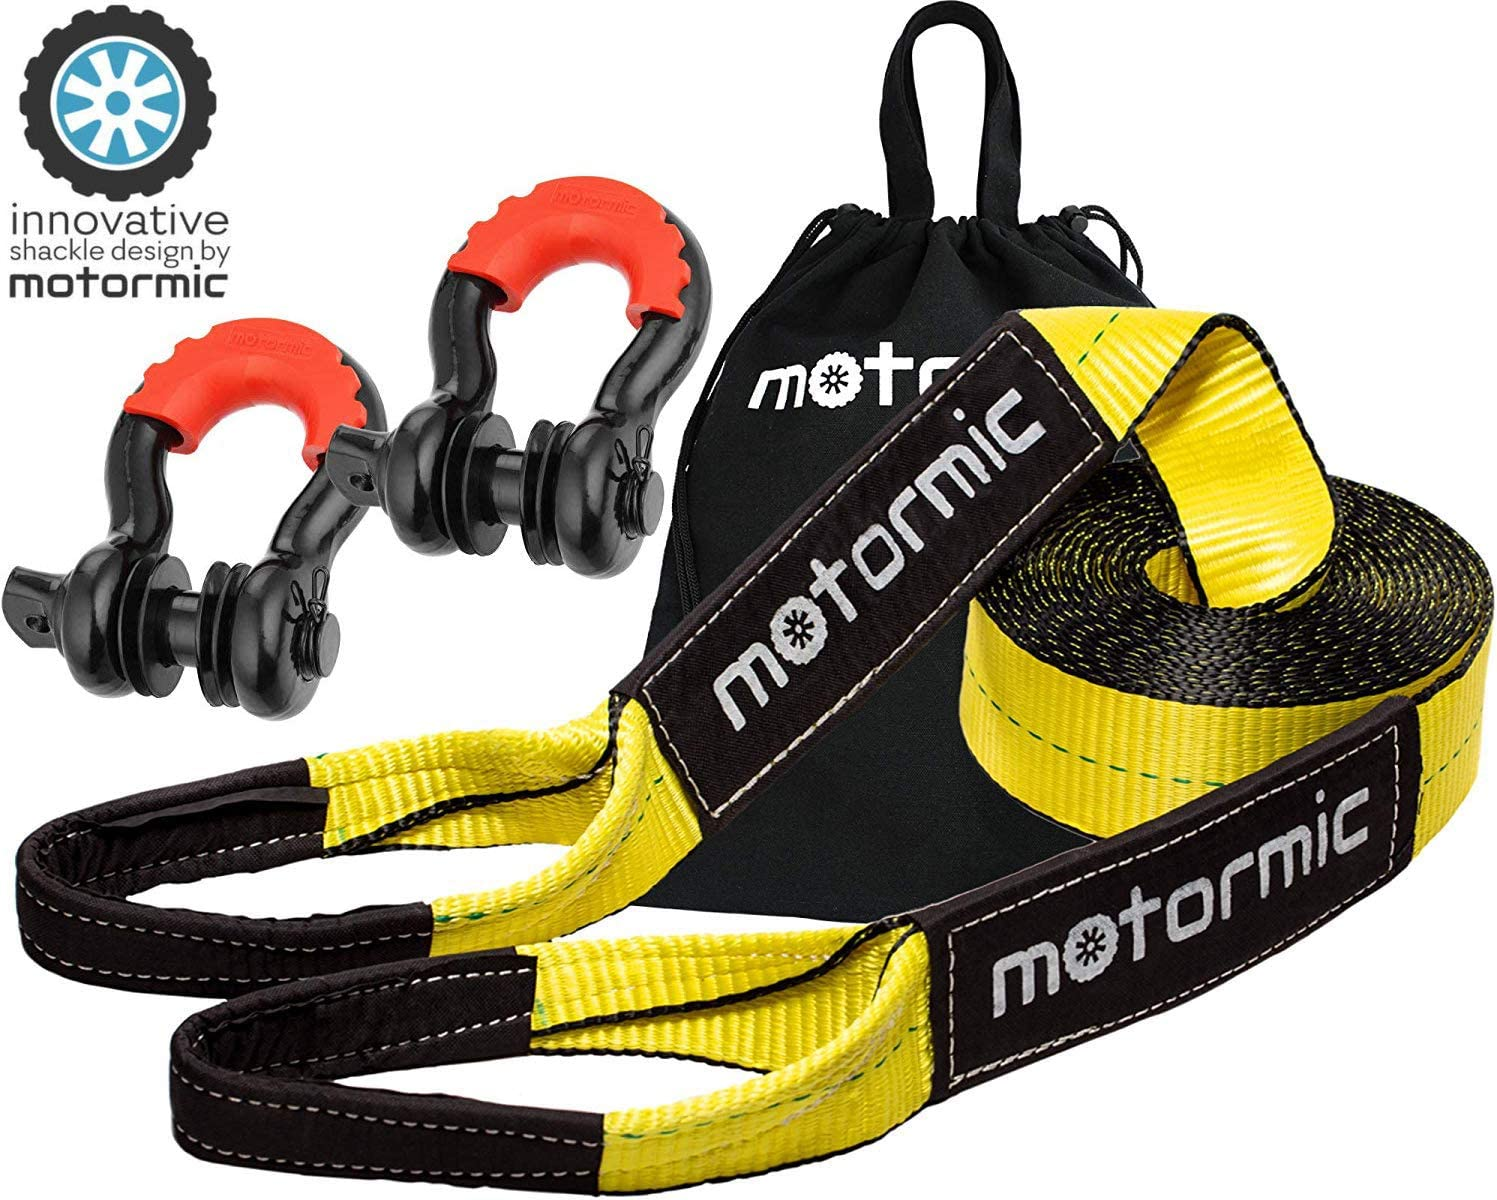 """motormic Tow Strap Recovery Kit - 3"""" x 30ft (30,000 lbs.) Rope + 3/4"""" D Ring Shackles (2pcs.) + Storage Bag - Heavy Duty Straps for Winch - Truck, Car, ATV, Off Road Vehicle Towing"""